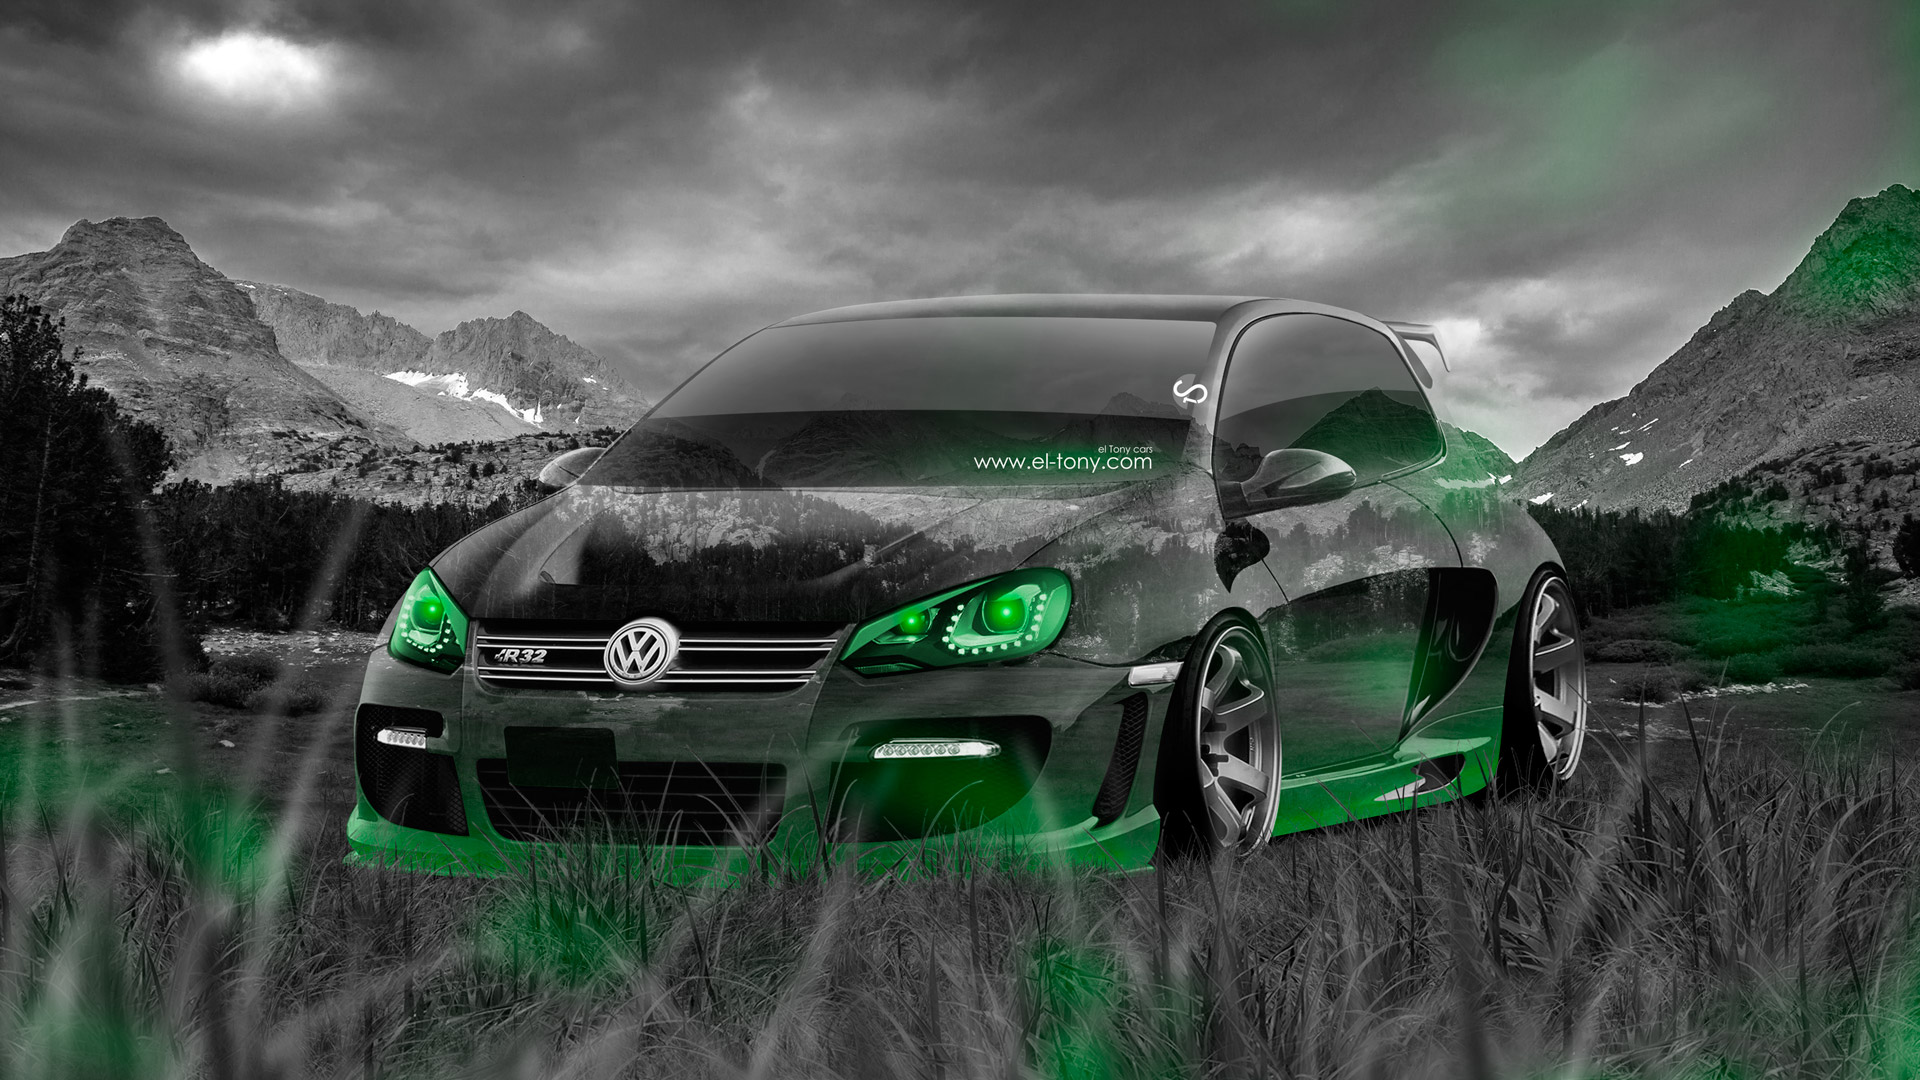 Volkswagen Golf R Tuning Crystal Nature Car Art Green Neon Hd Wallpapers Design By Tony Kokhan Www El Tony Com on 2015 Dodge Sedan